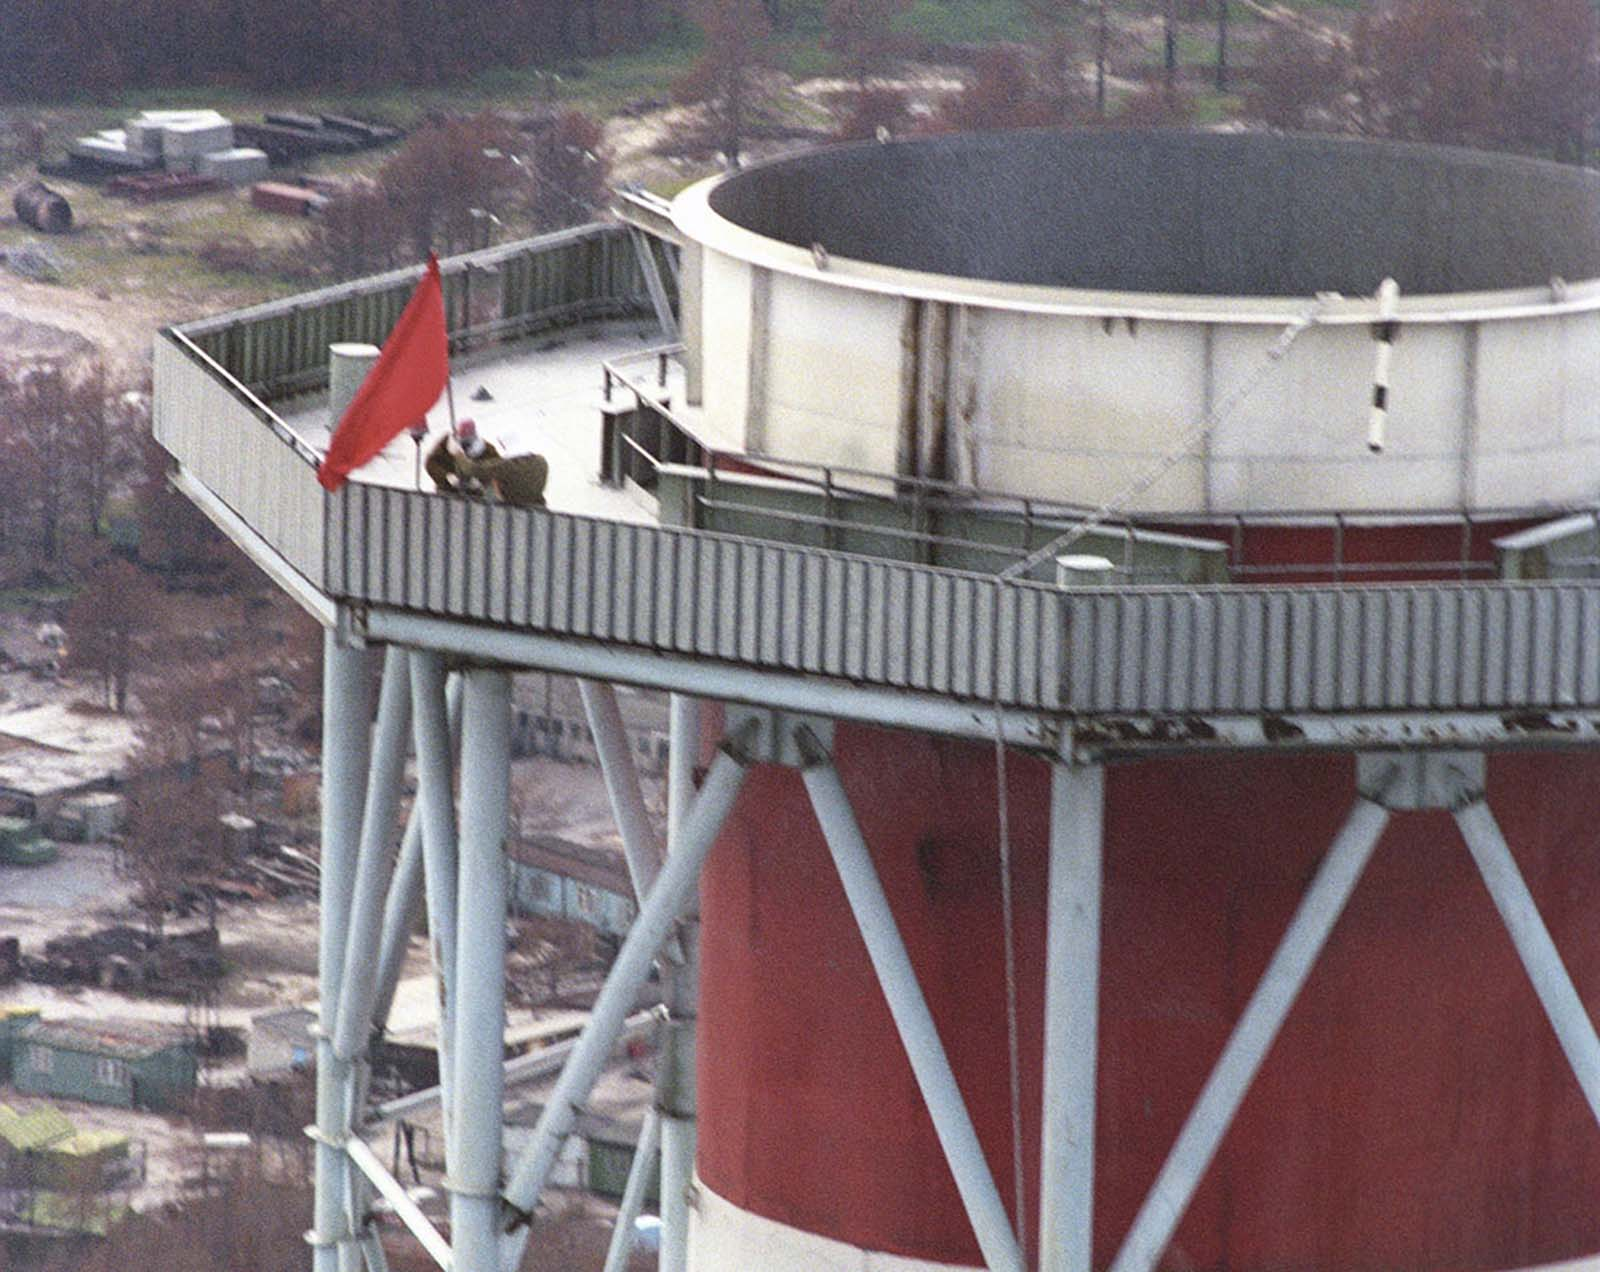 Following orders issued by Soviet authorities to mark the end of cleanup operations on the roof of the No. 3 reactor, three men were requested to post a red flag atop the chimney overlooking the destroyed reactor, reached by climbing 78 meters up a spiral staircase. The flag bearers were sent despite the dangers posed by heavy radiation, and after a group of liquidators had already made two failed attempts by helicopter. The radiation expert Alexander Yourtchenko carried the pole, followed by Valéri Starodoumov with the flag, and Lieutenant Colonel Alexander Sotnikov with the radio. The whole operation was timed to last only 9 minutes, given the high radiation levels. At the end, the trio were rewarded with a bottle of Pepsi (a luxury in 1986) and a day off.